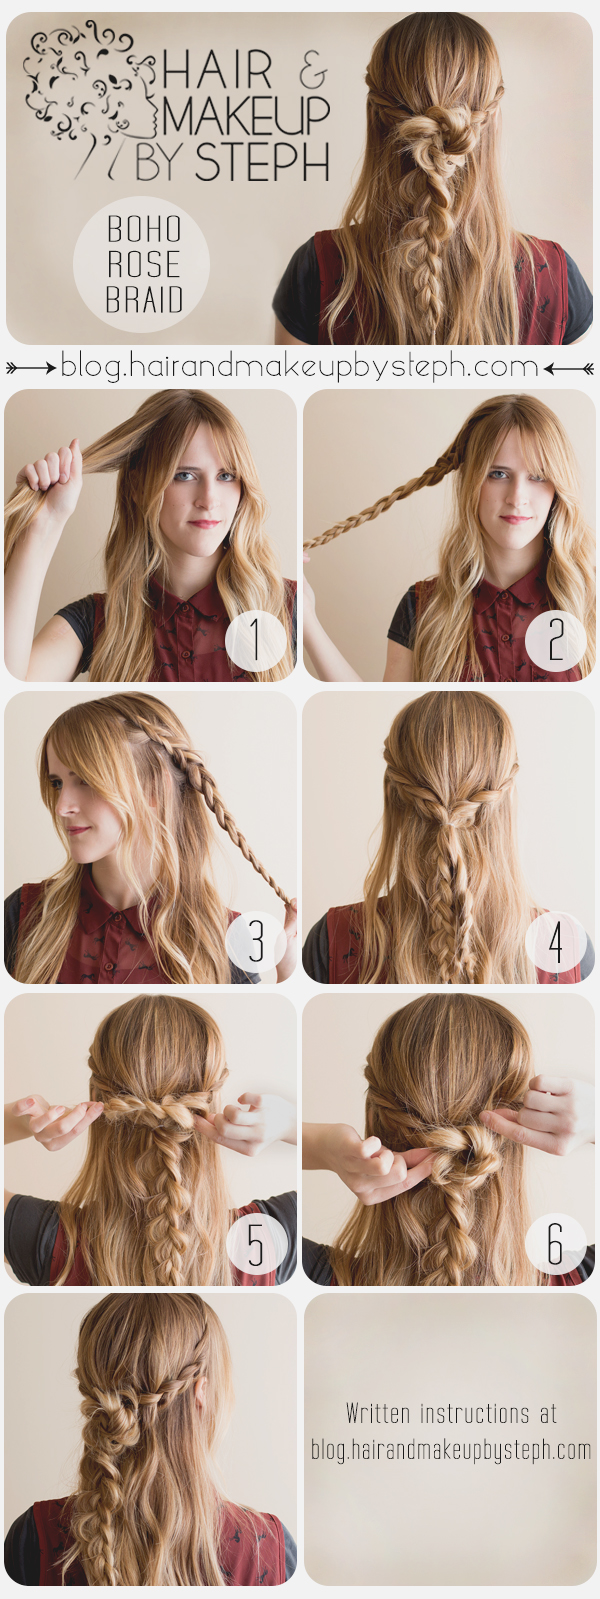 Braided Hairstyle Tutorial for Young Ladies